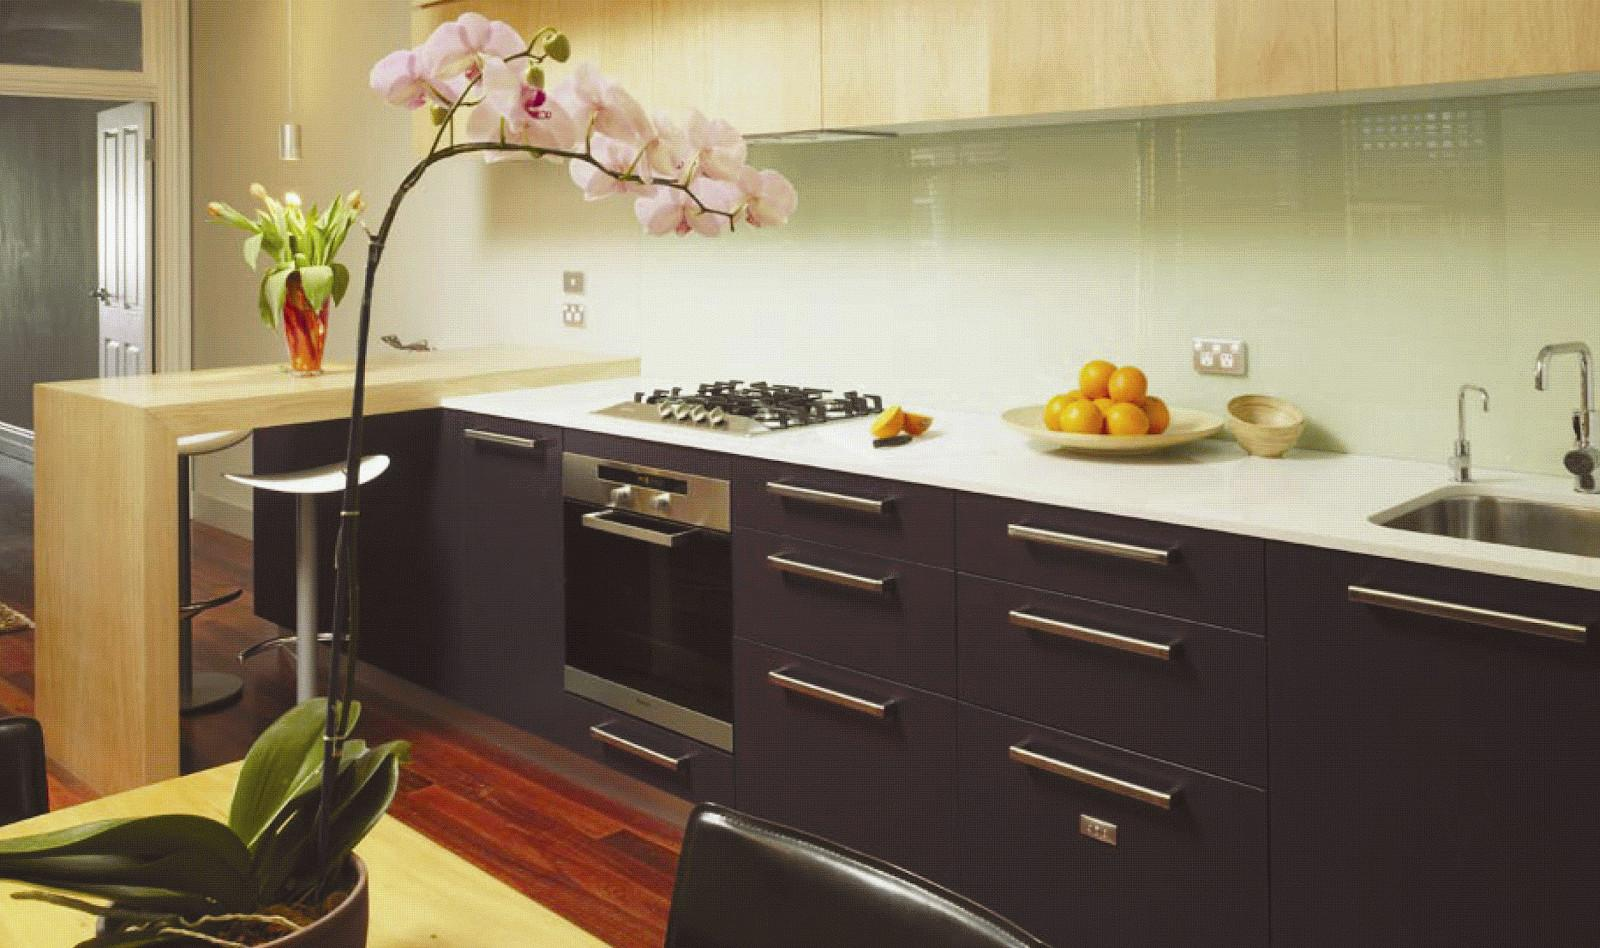 Perfect Layout Your Home Guide Kitchen Design